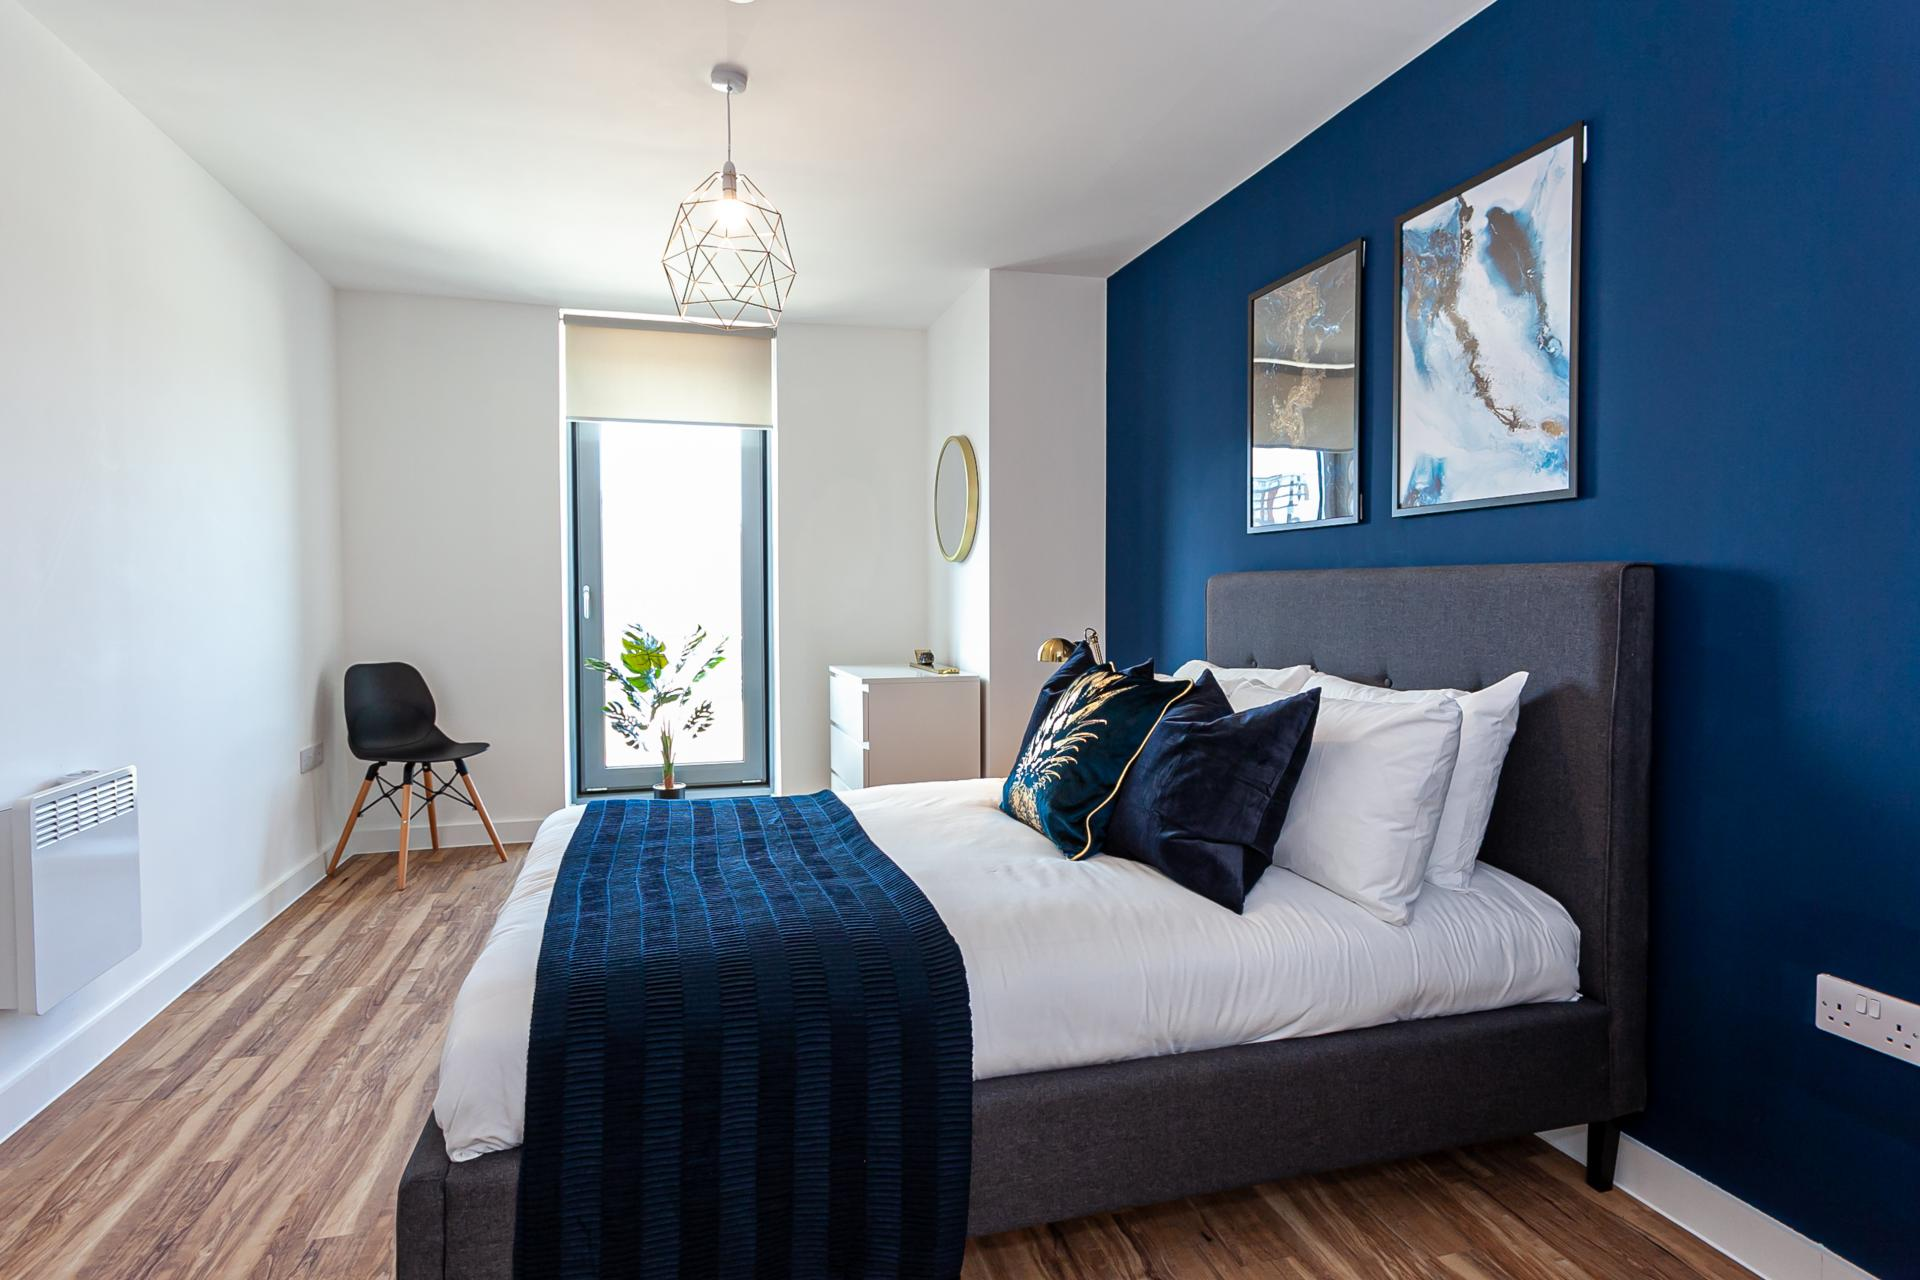 Bed at Michigan Point Tower, Ordsall, Manchester - Citybase Apartments